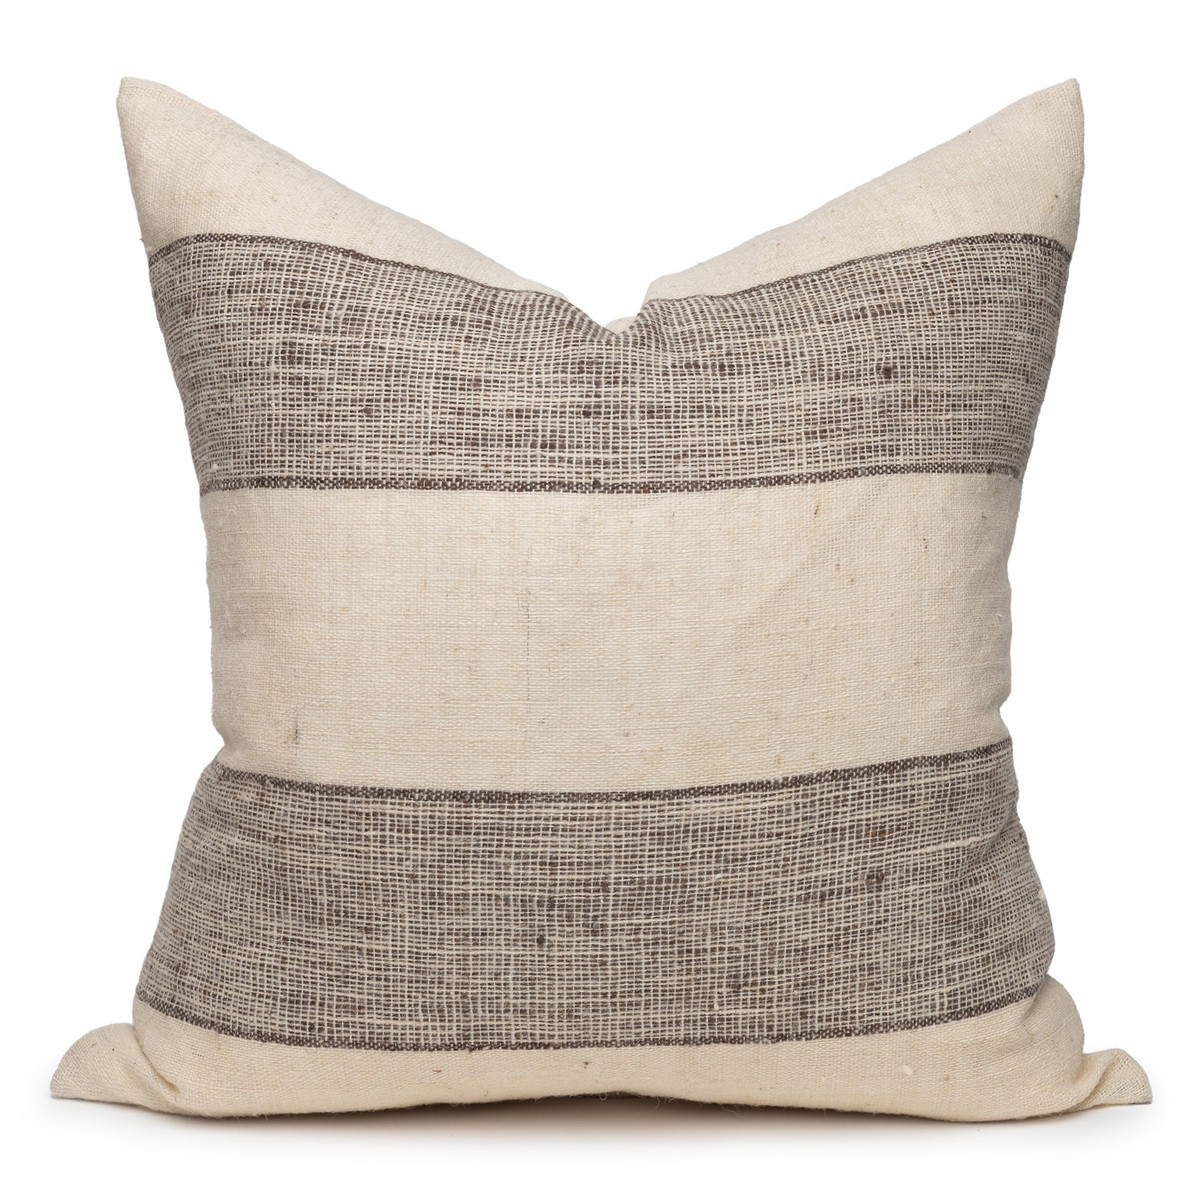 Rhea Indian Wool Ivory and Espresso Stripe Pillow - 24- Front View